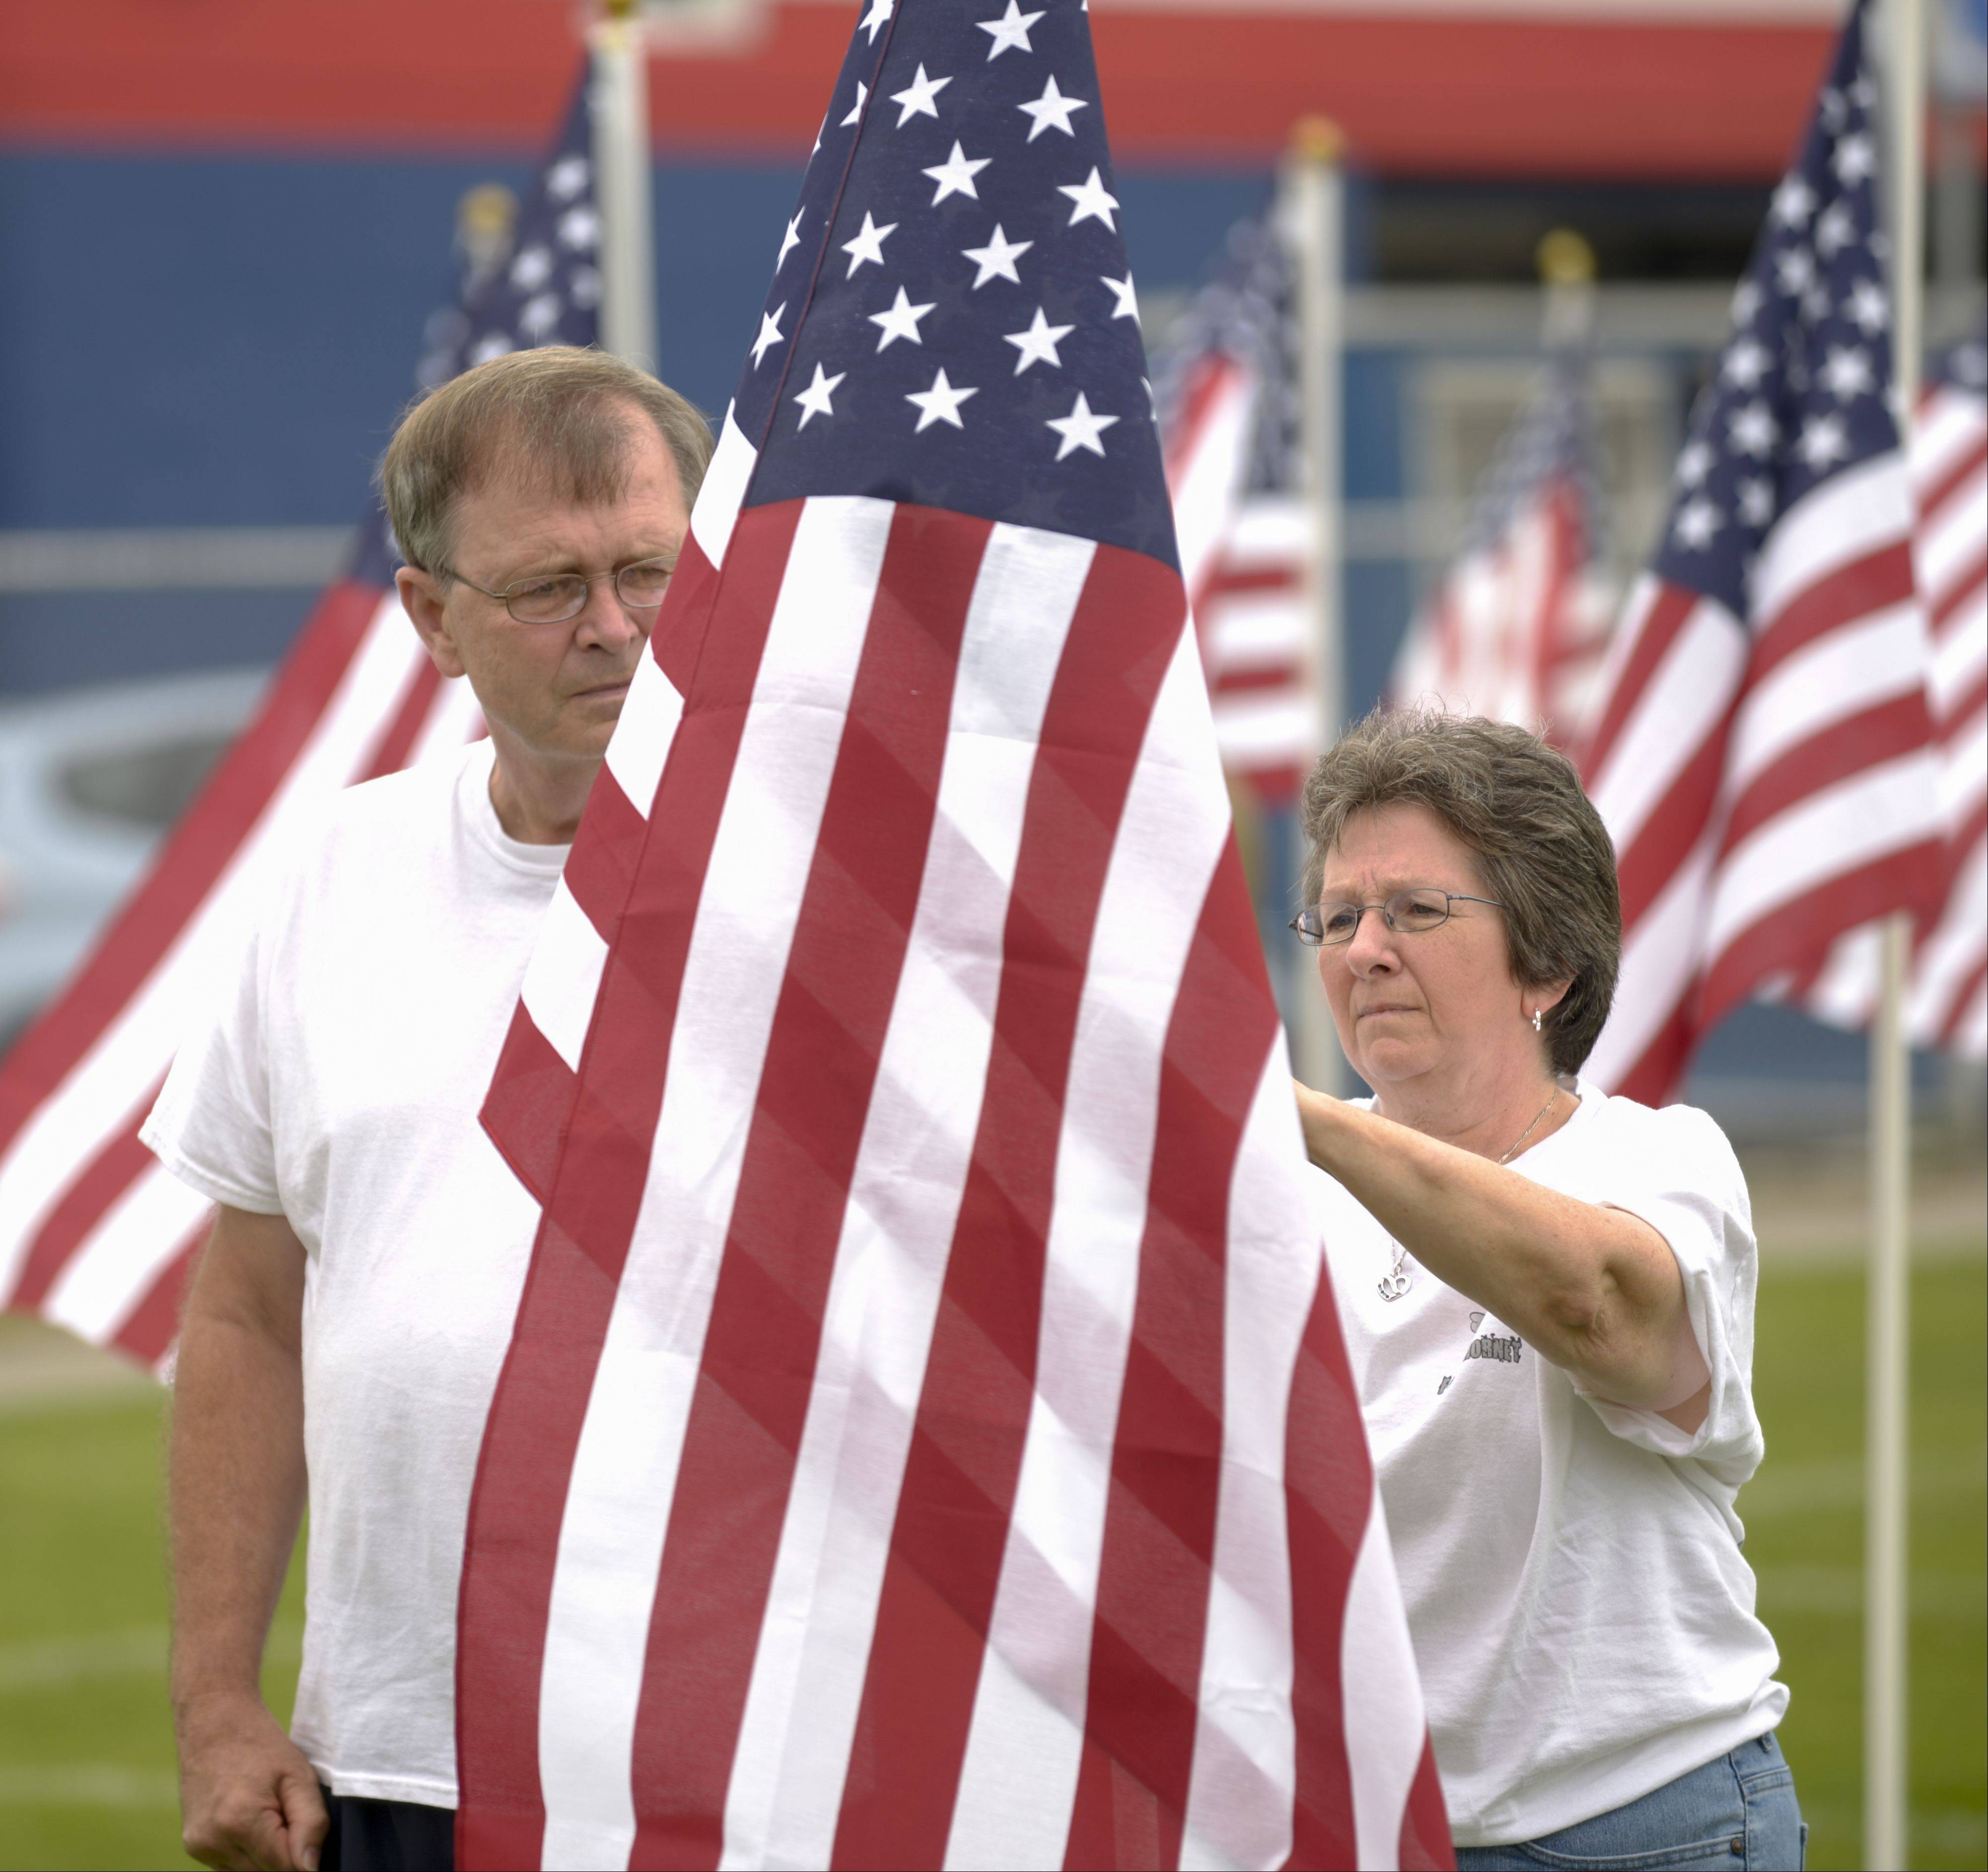 Mike and Mary Kline attach a tag with their son Terrence's name to their flag Friday during a ceremony to preview the Healing Field of Honor at West Aurora High School. Terrence Kline is a Navy pilot on the aircraft carrier George H.W. Bush.